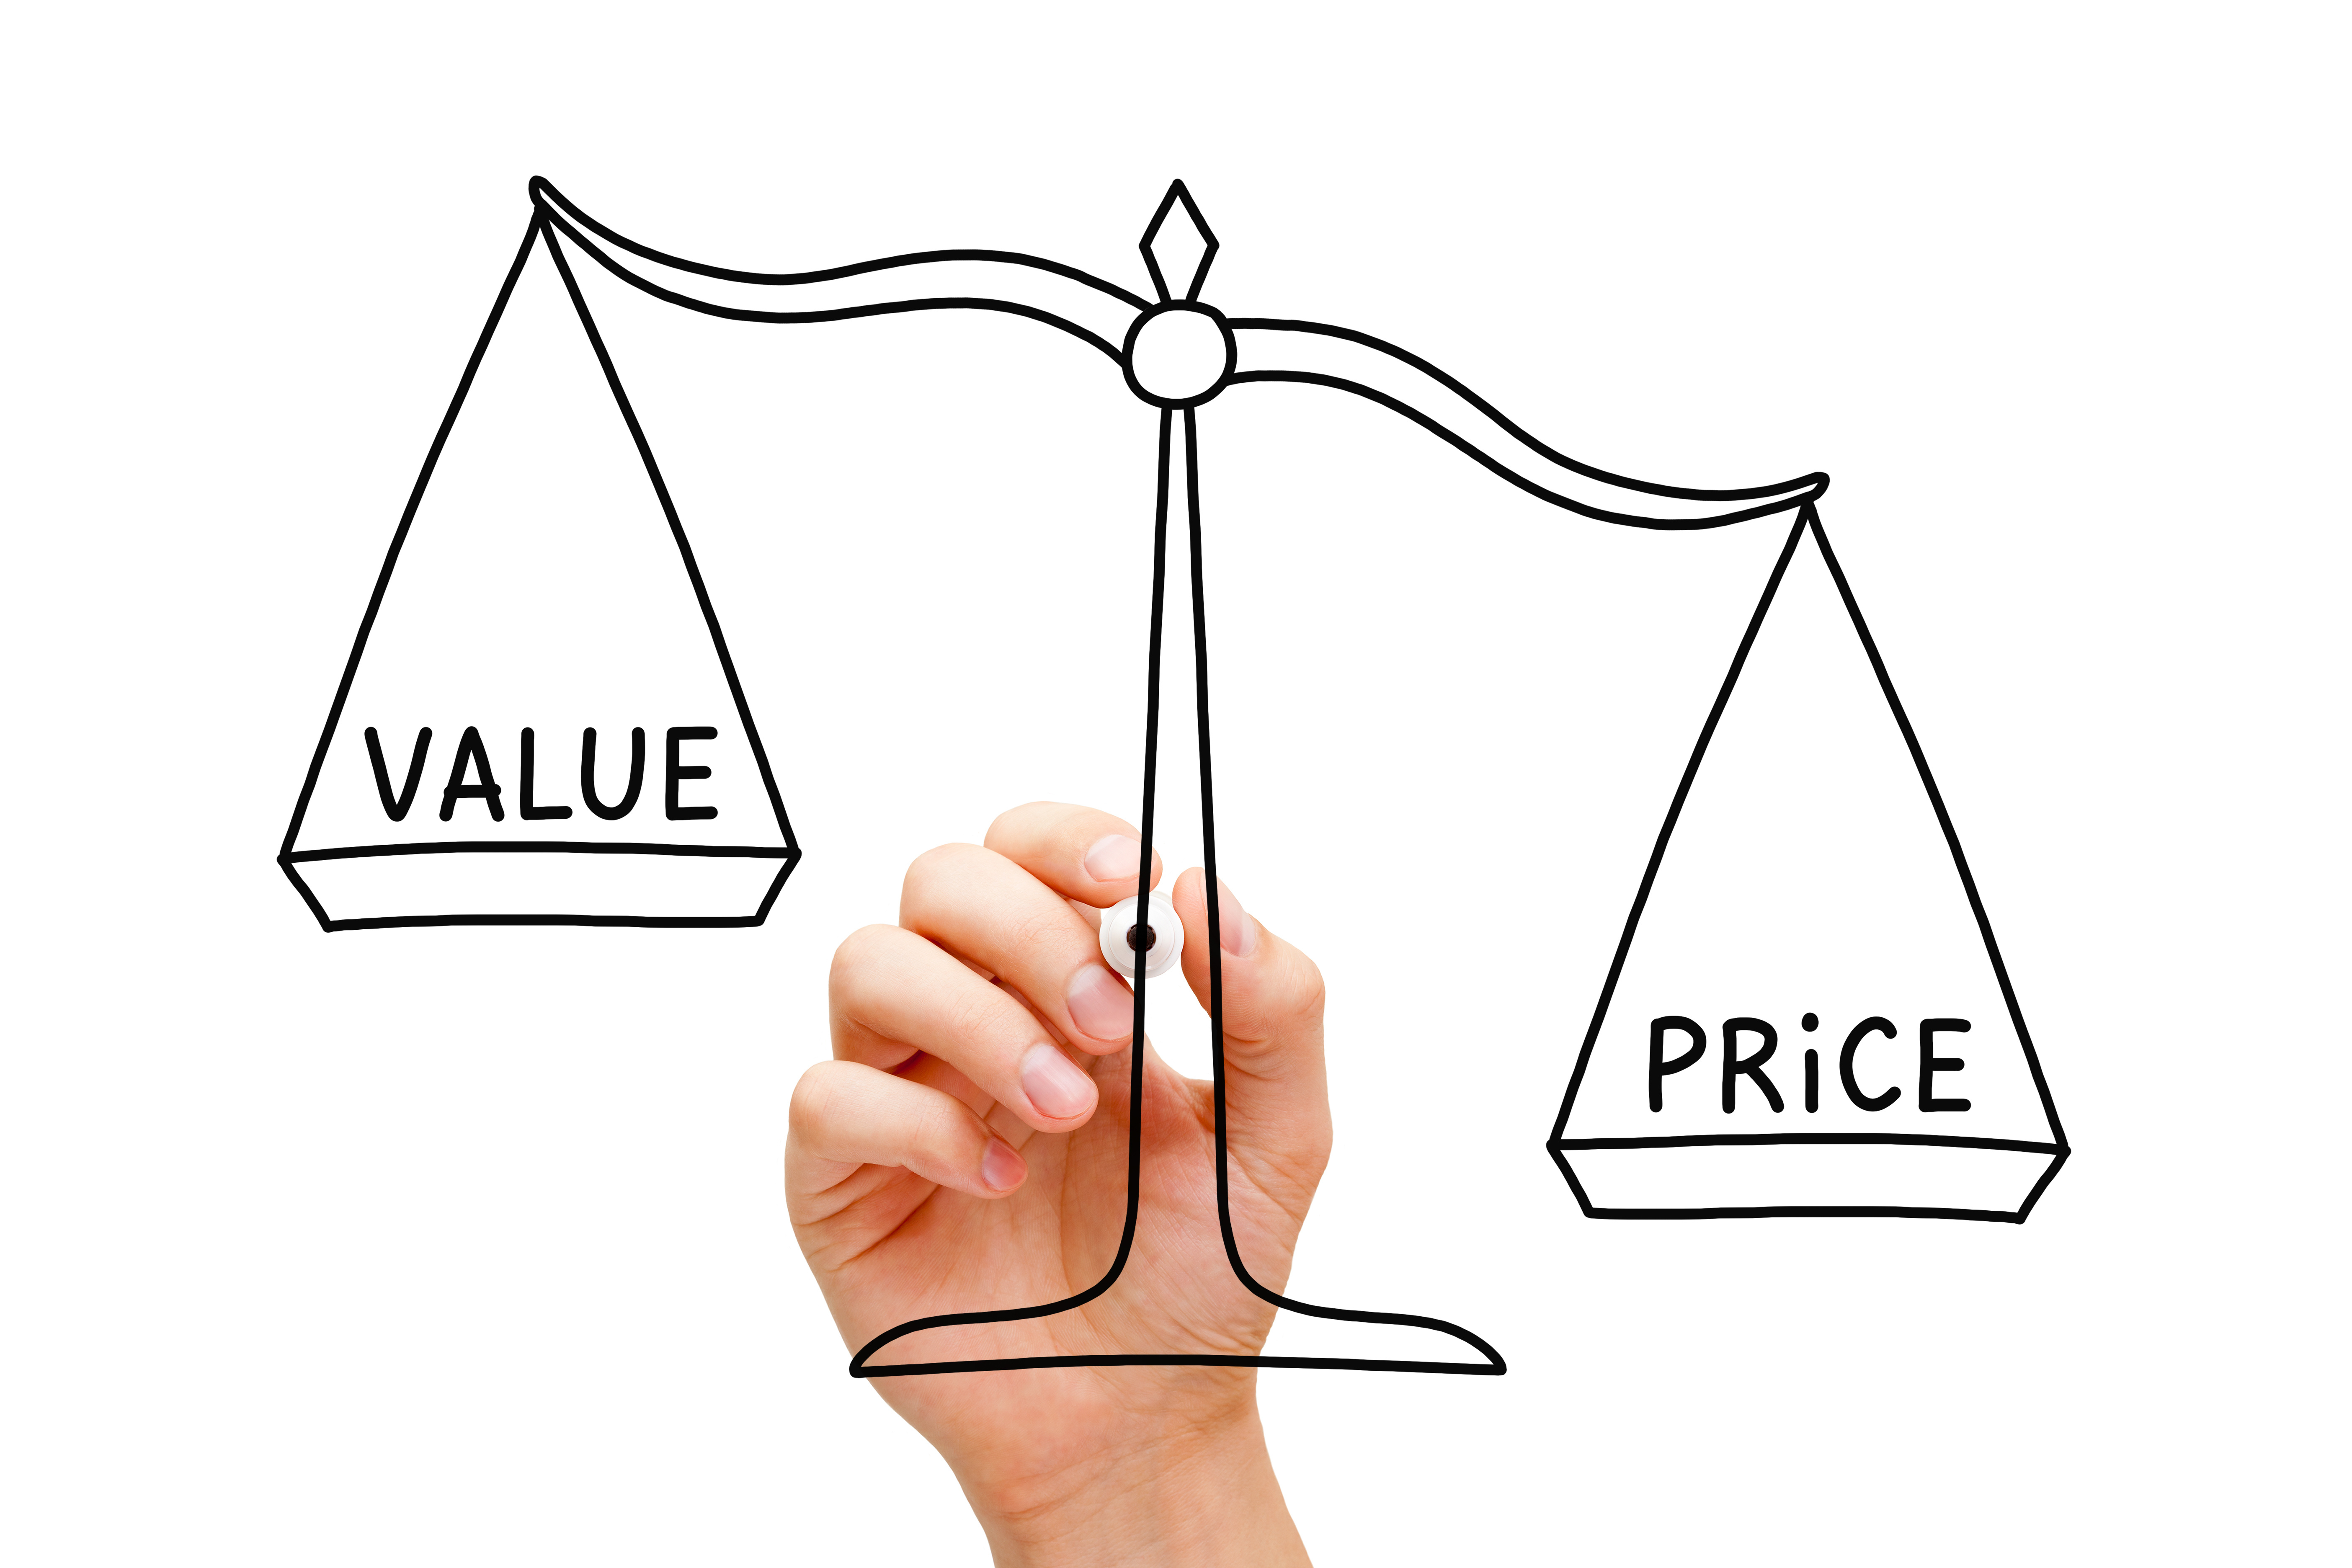 Is it right to raise prices when you aren't adding value?